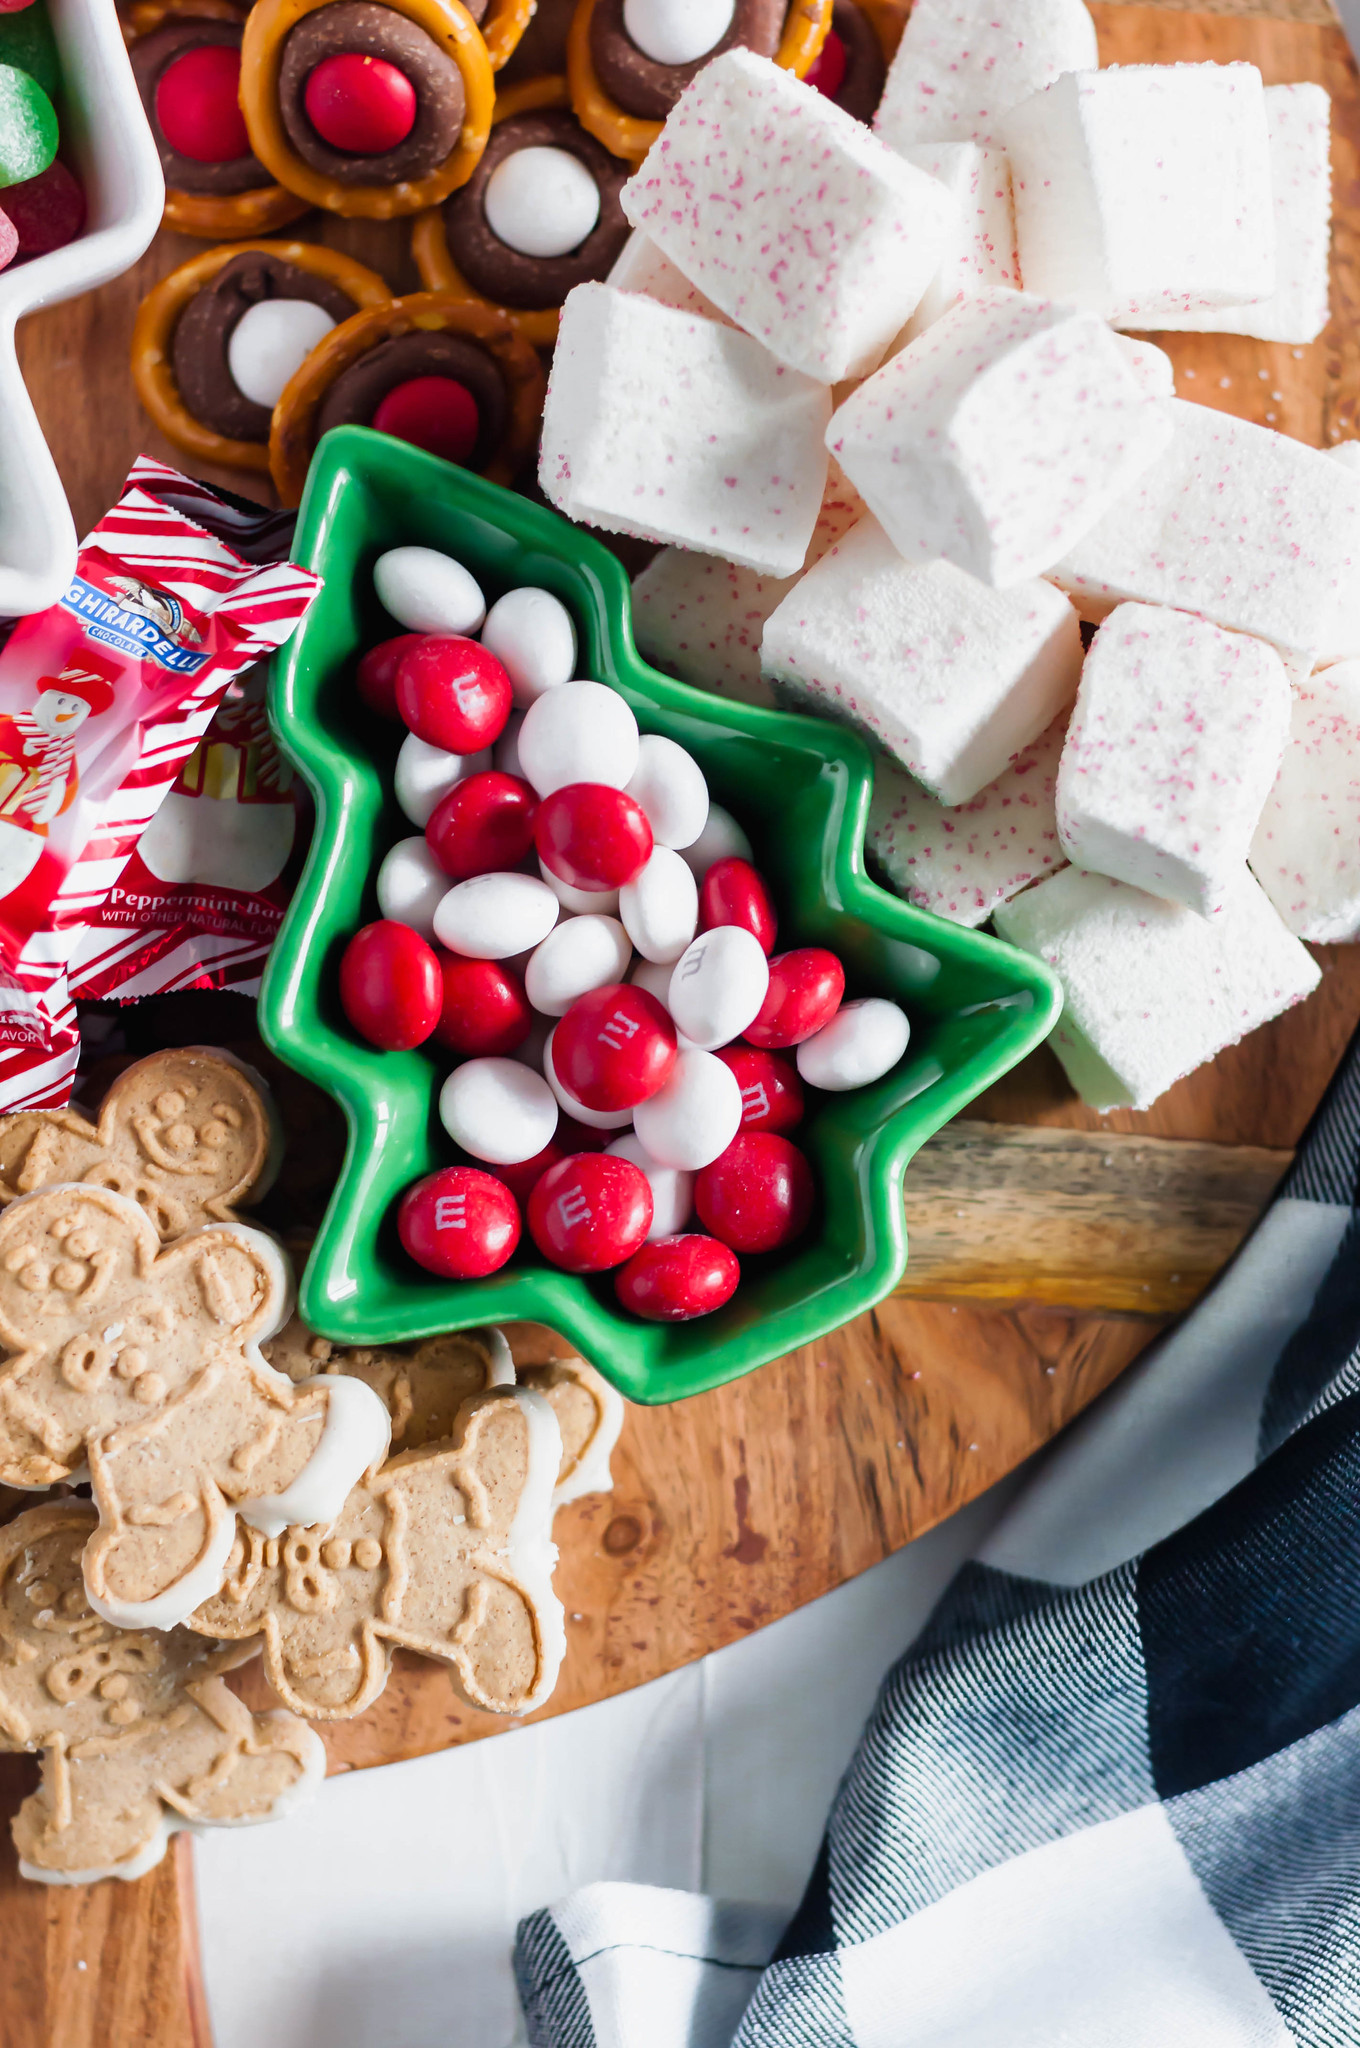 This Easy Christmas Dessert Board will be the talk of your Christmas party. A homemade treat or two filled in with fun, festive cookies and candies.